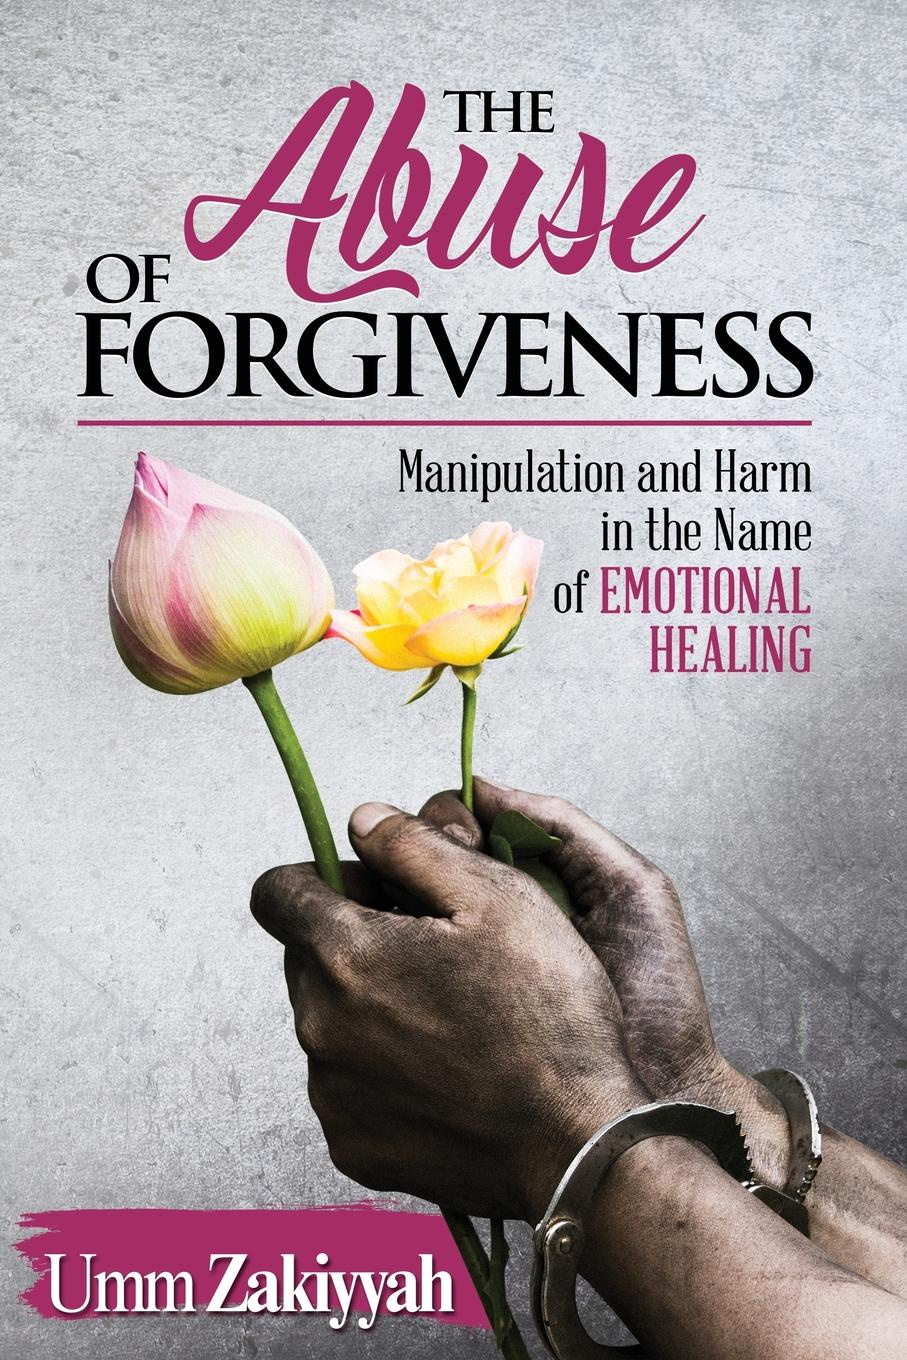 Umm Zakiyyah The Abuse of Forgiveness. Manipulation and Harm in the Name of Emotional Healing